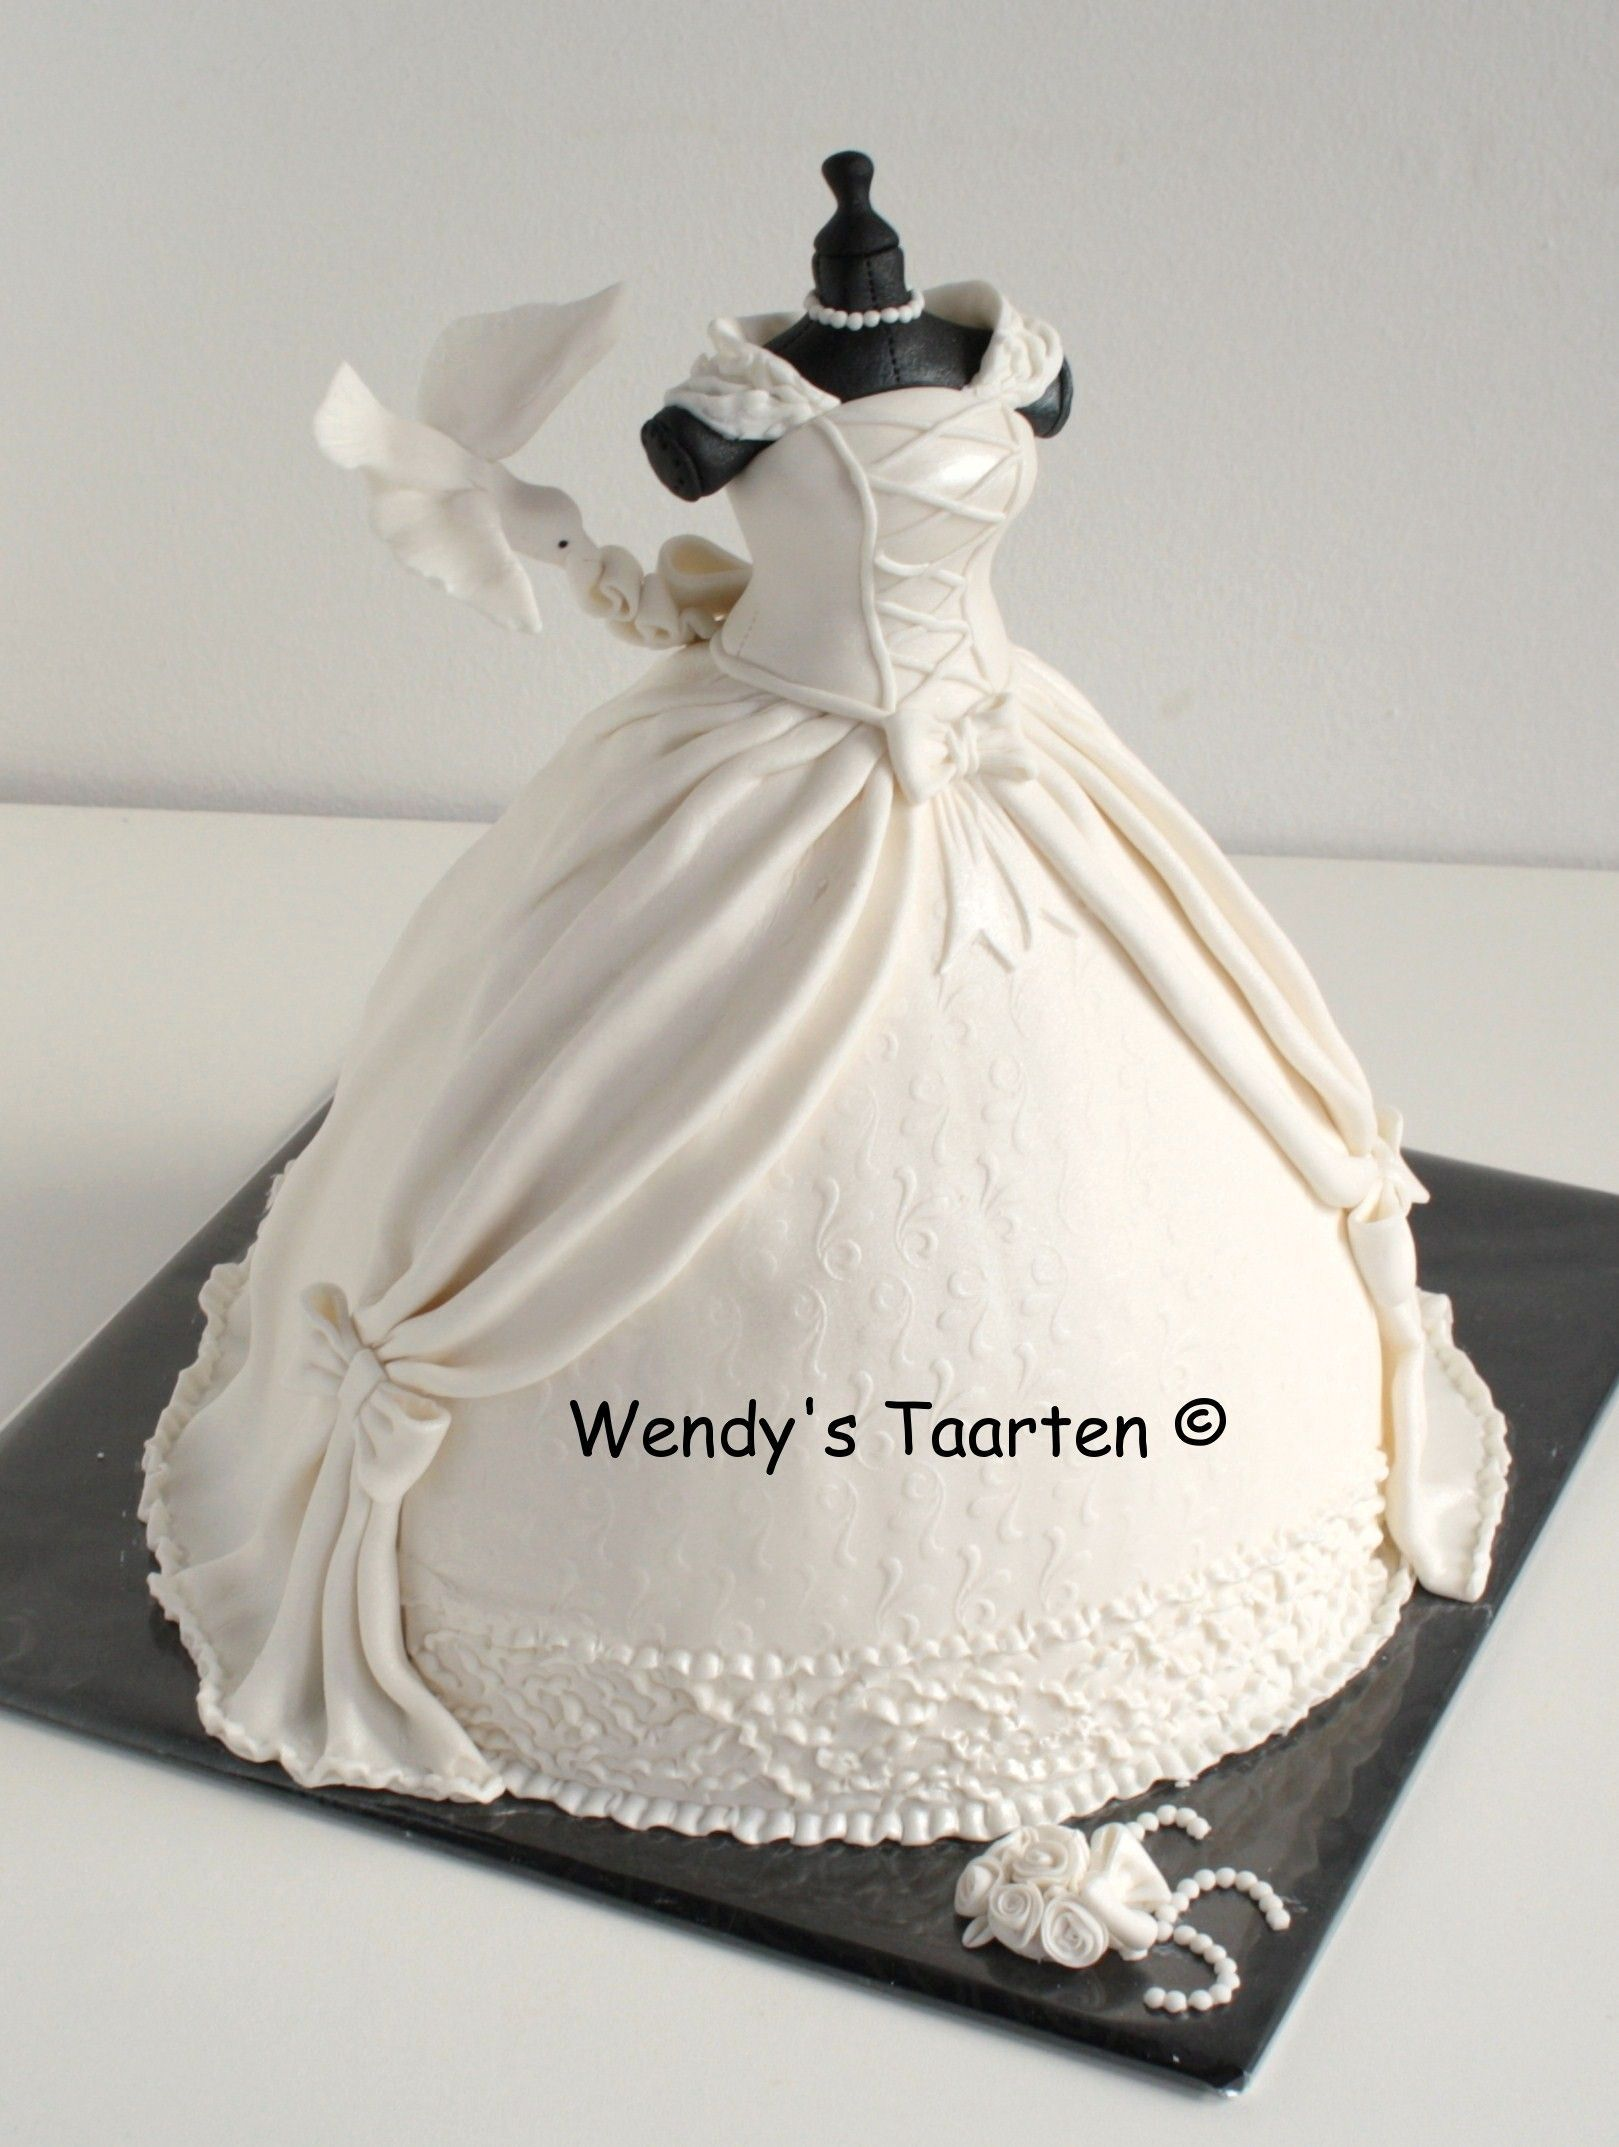 Bridal gown cake this cake is a disign that is one of my workshop